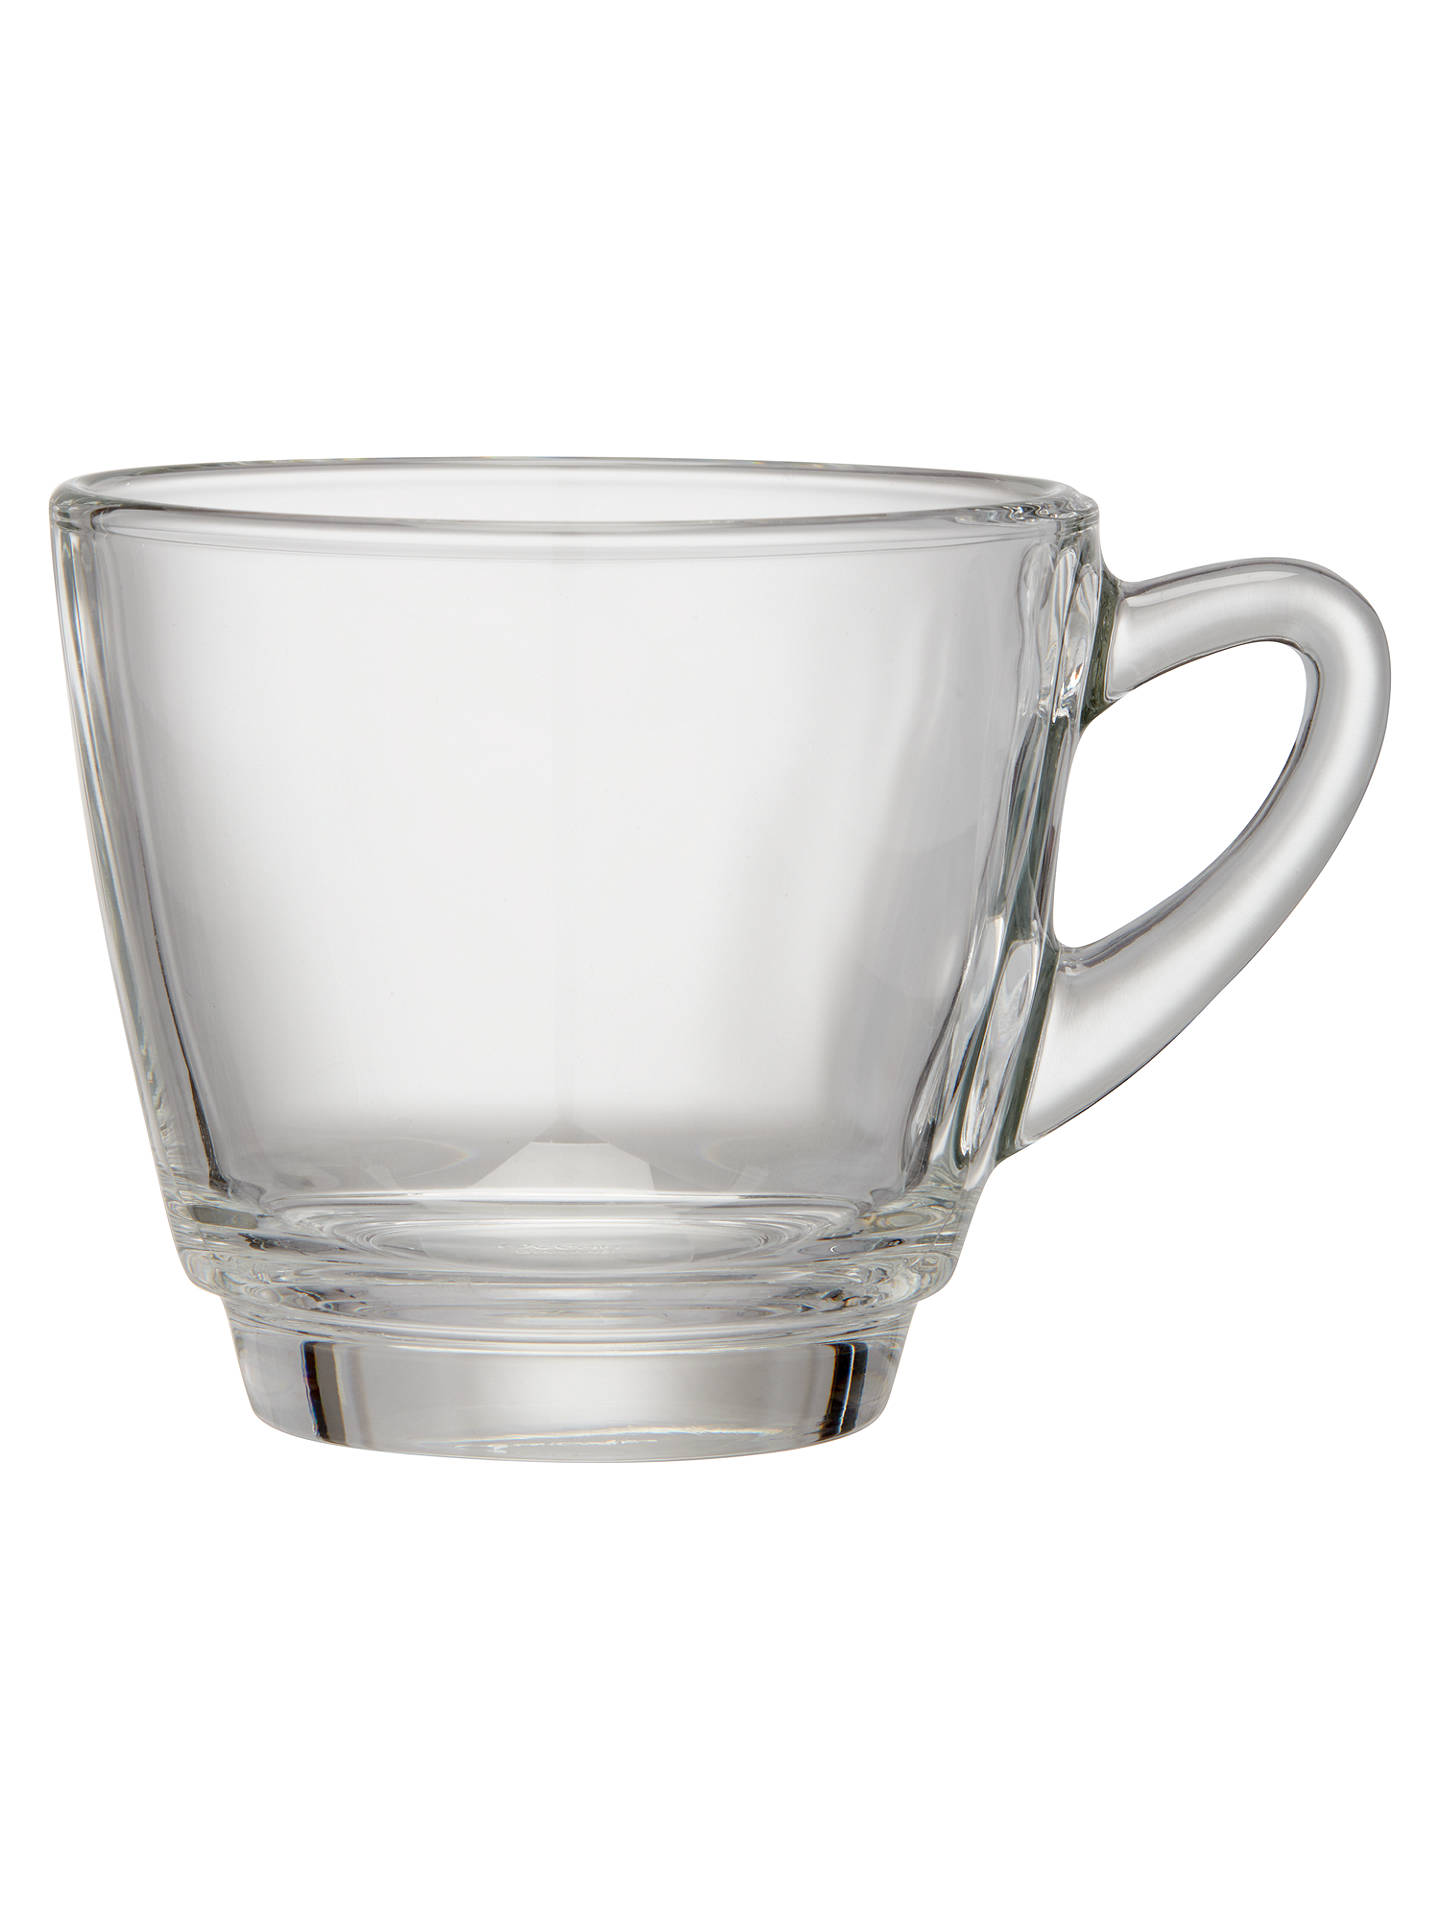 BuyJohn Lewis & Partners Coffee Connoisseur Glass Kenya Cup, 245ml, Clear Online at johnlewis.com